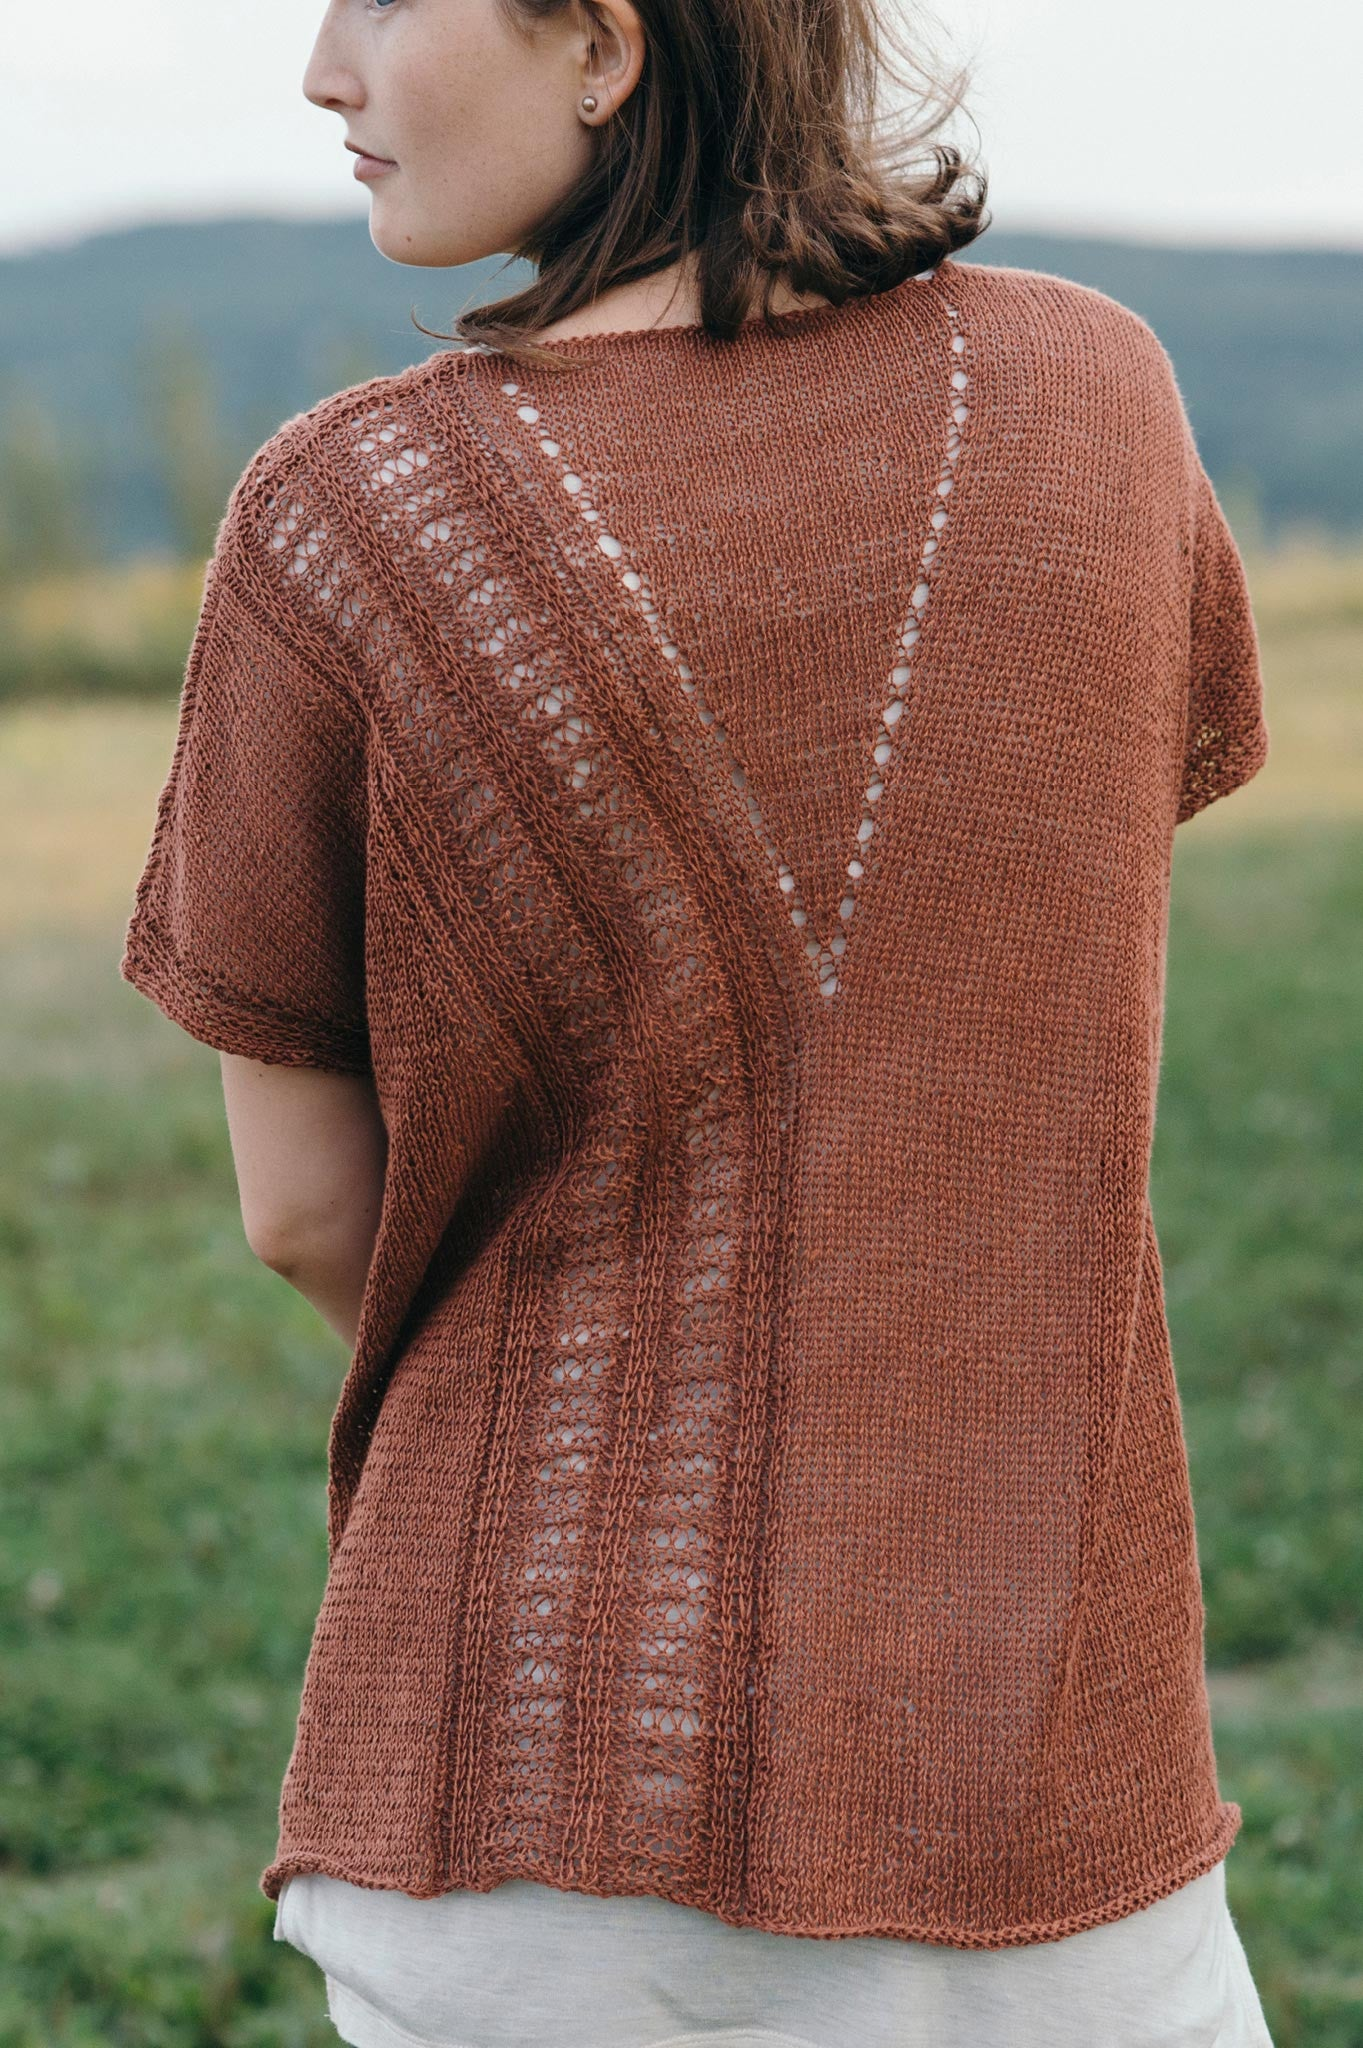 Walkway tee knitting pattern quince and co walkway dt1010fo